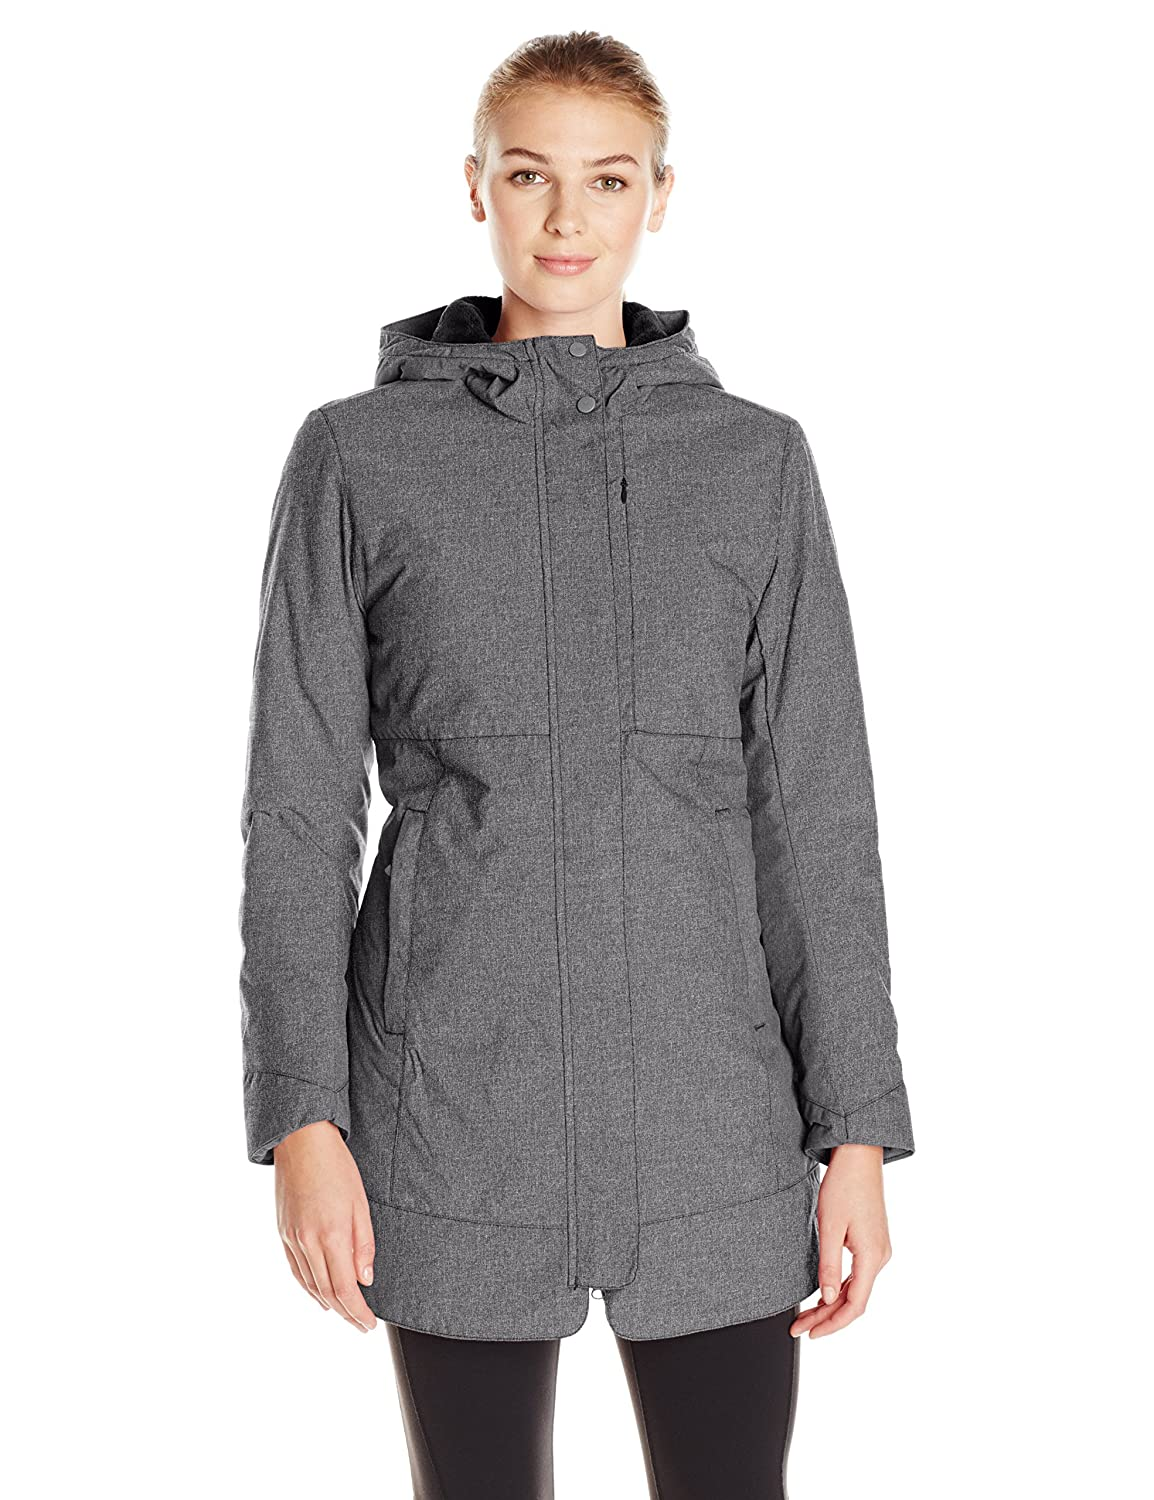 Black White Sierra Women's Sugarloaf Insulated Long Jacket